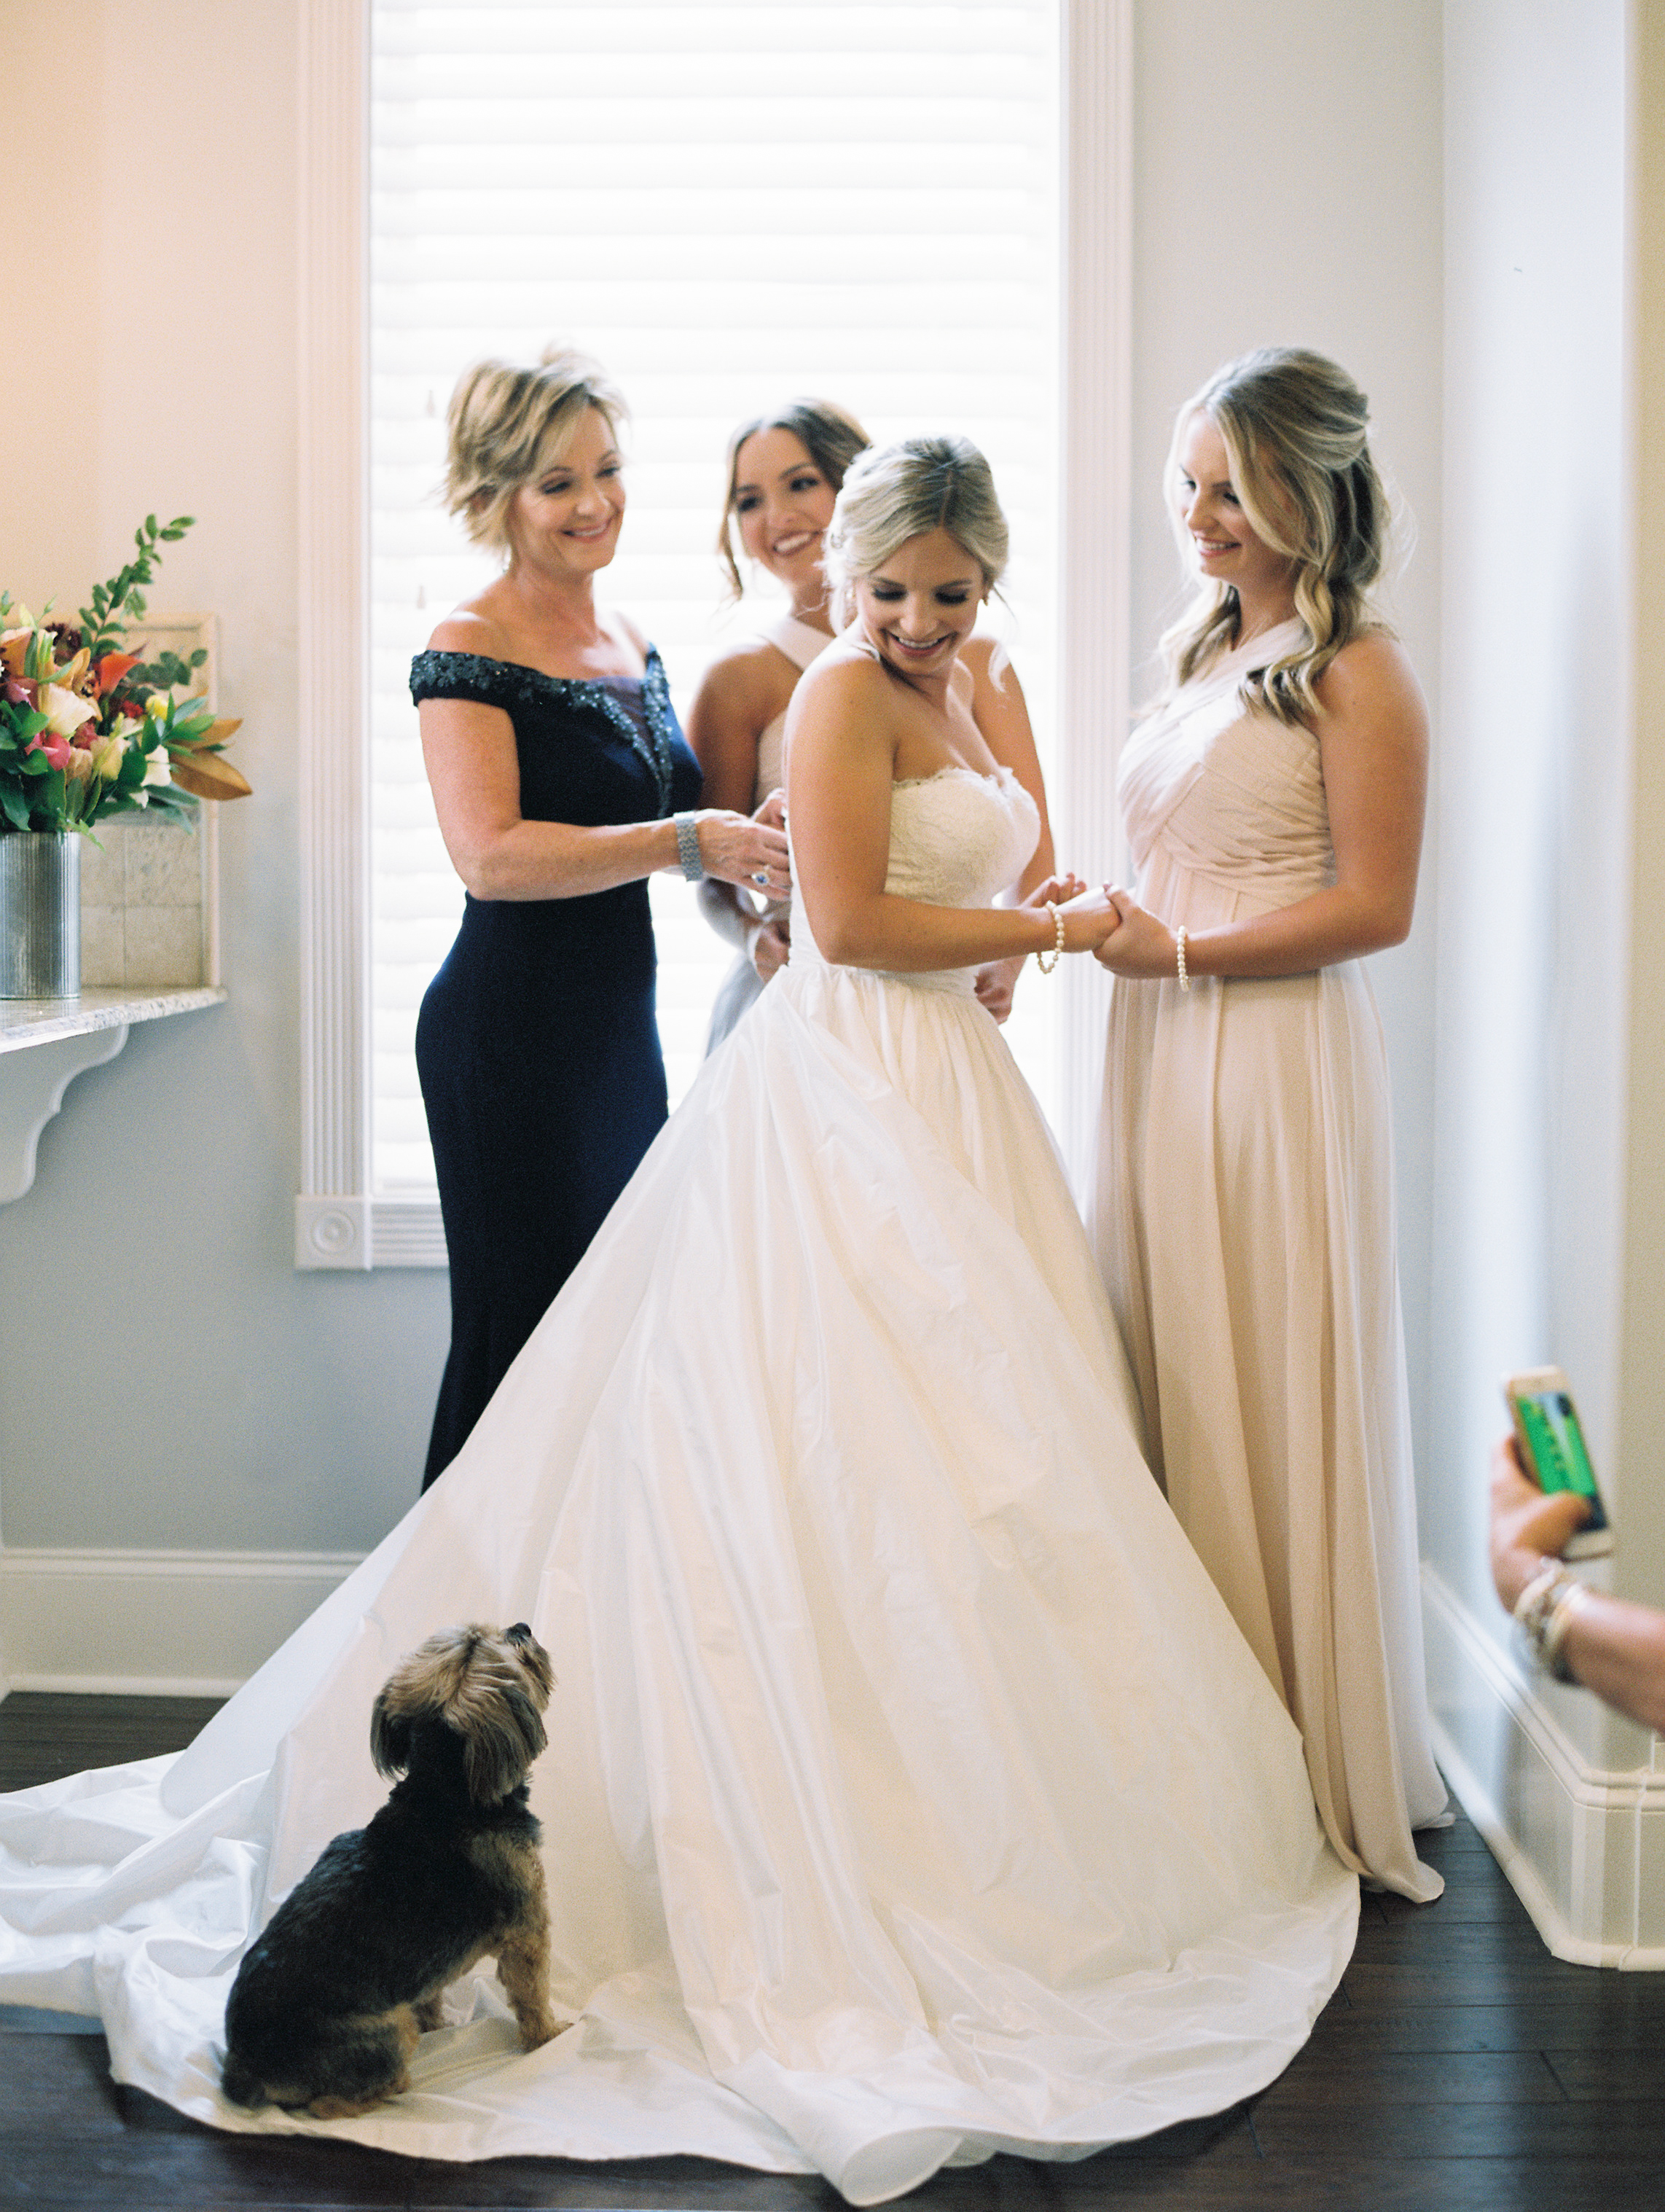 Southern Fete, Southern Wedding, Bride, Mother of the Bride, Maid of Honor, Sarah Beth Photography